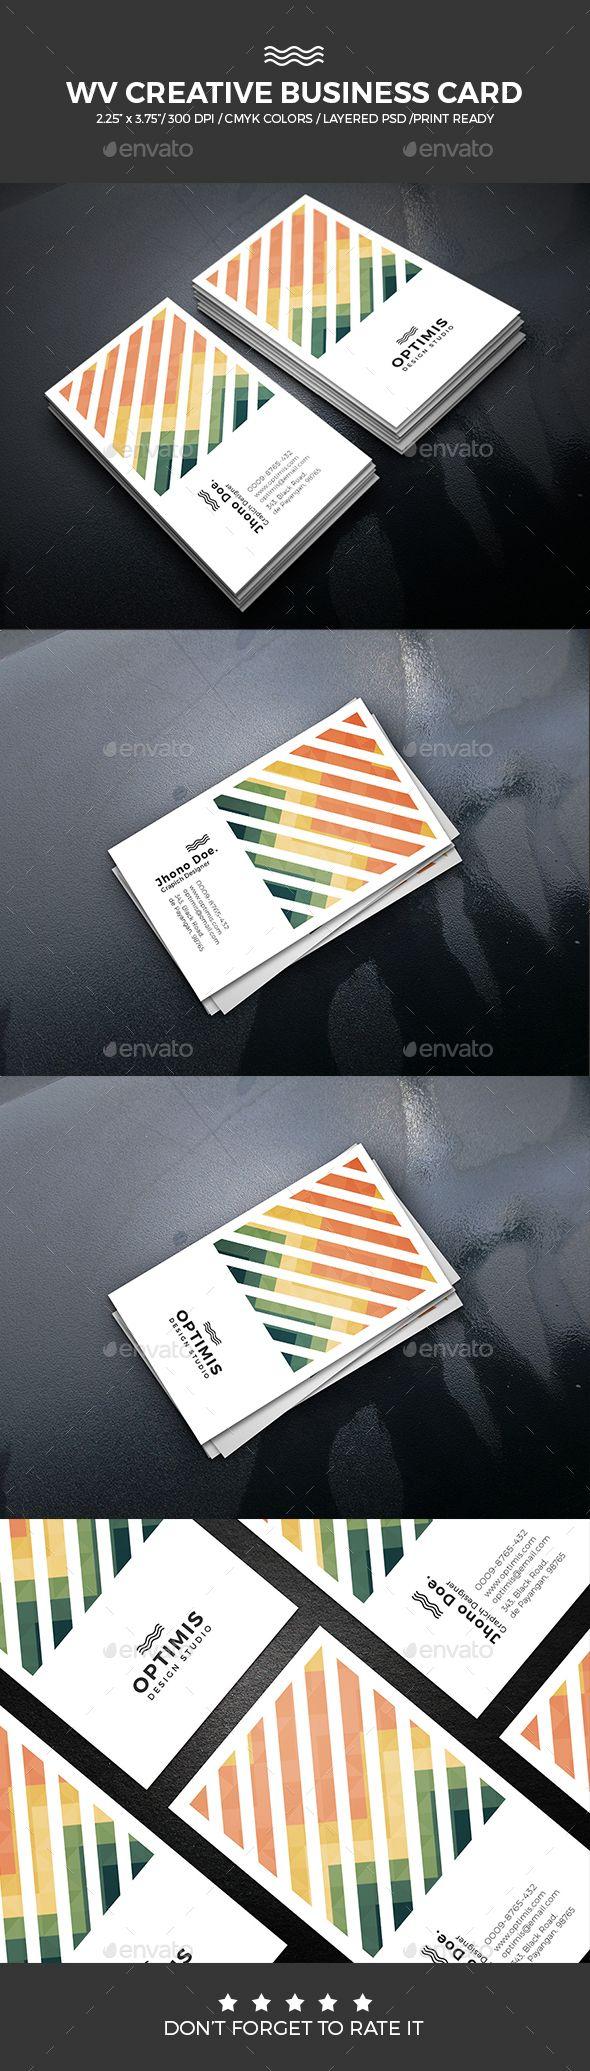 WV Creative Business Card